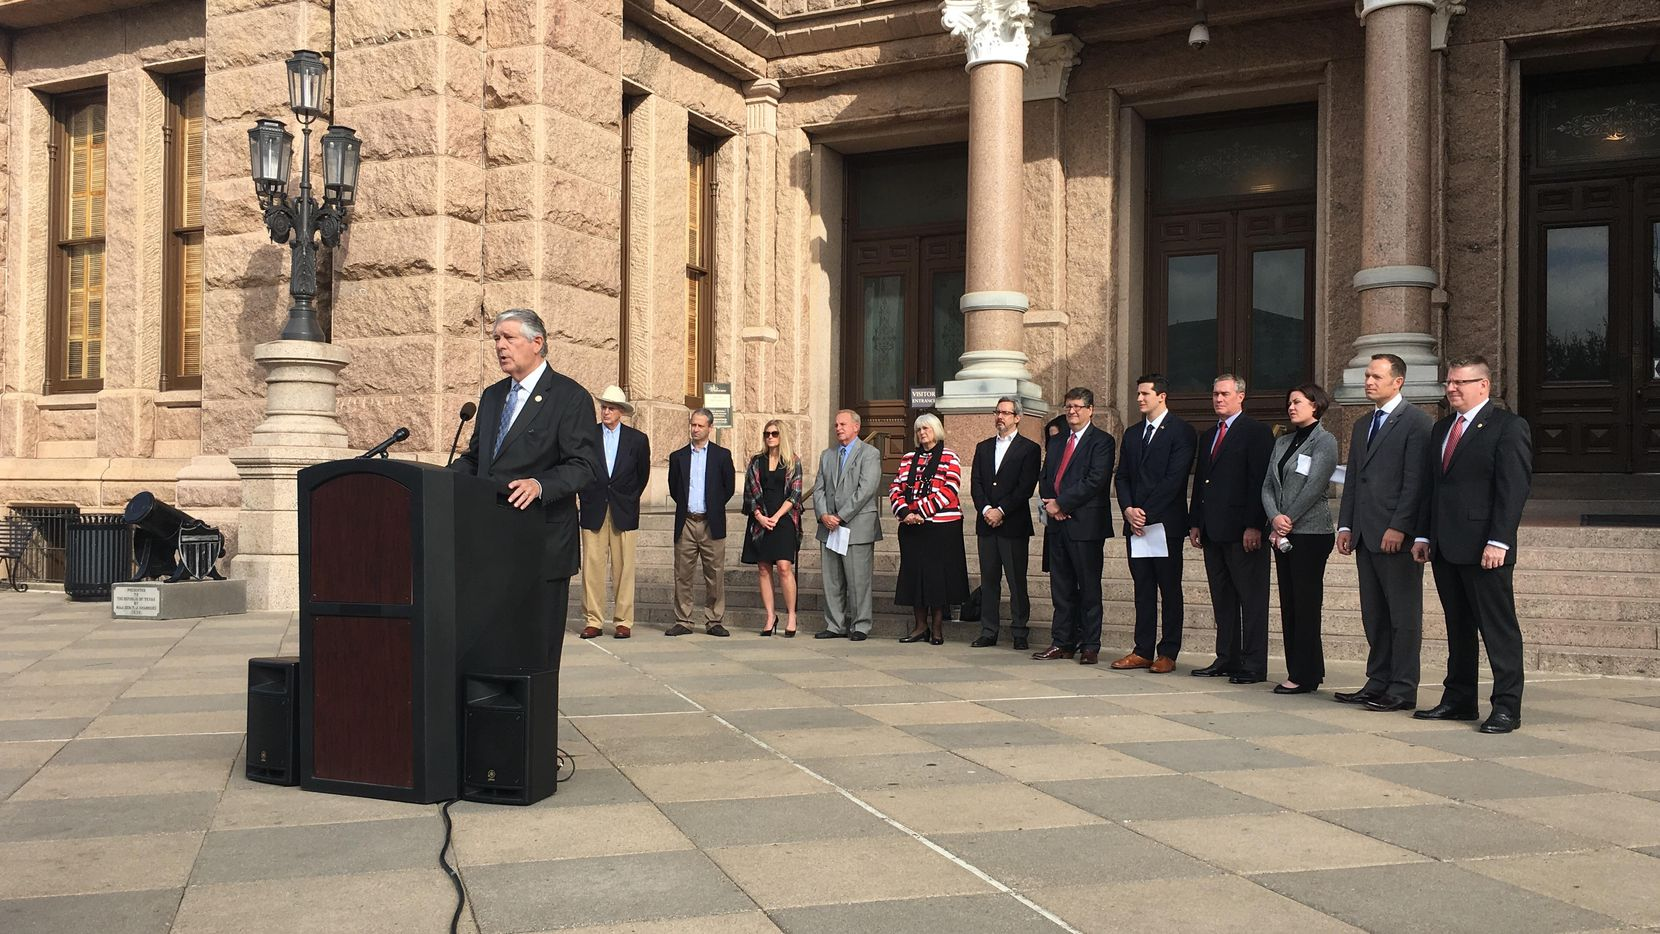 State Rep. Paul Workman, R-Austin, speaks at a news conference Tuesday morning where he announced plans to file a bill that would prohibit local laws preventing private companies from asking about job applicants' criminal history. (Madlin Mekelburg/The Dallas Morning News